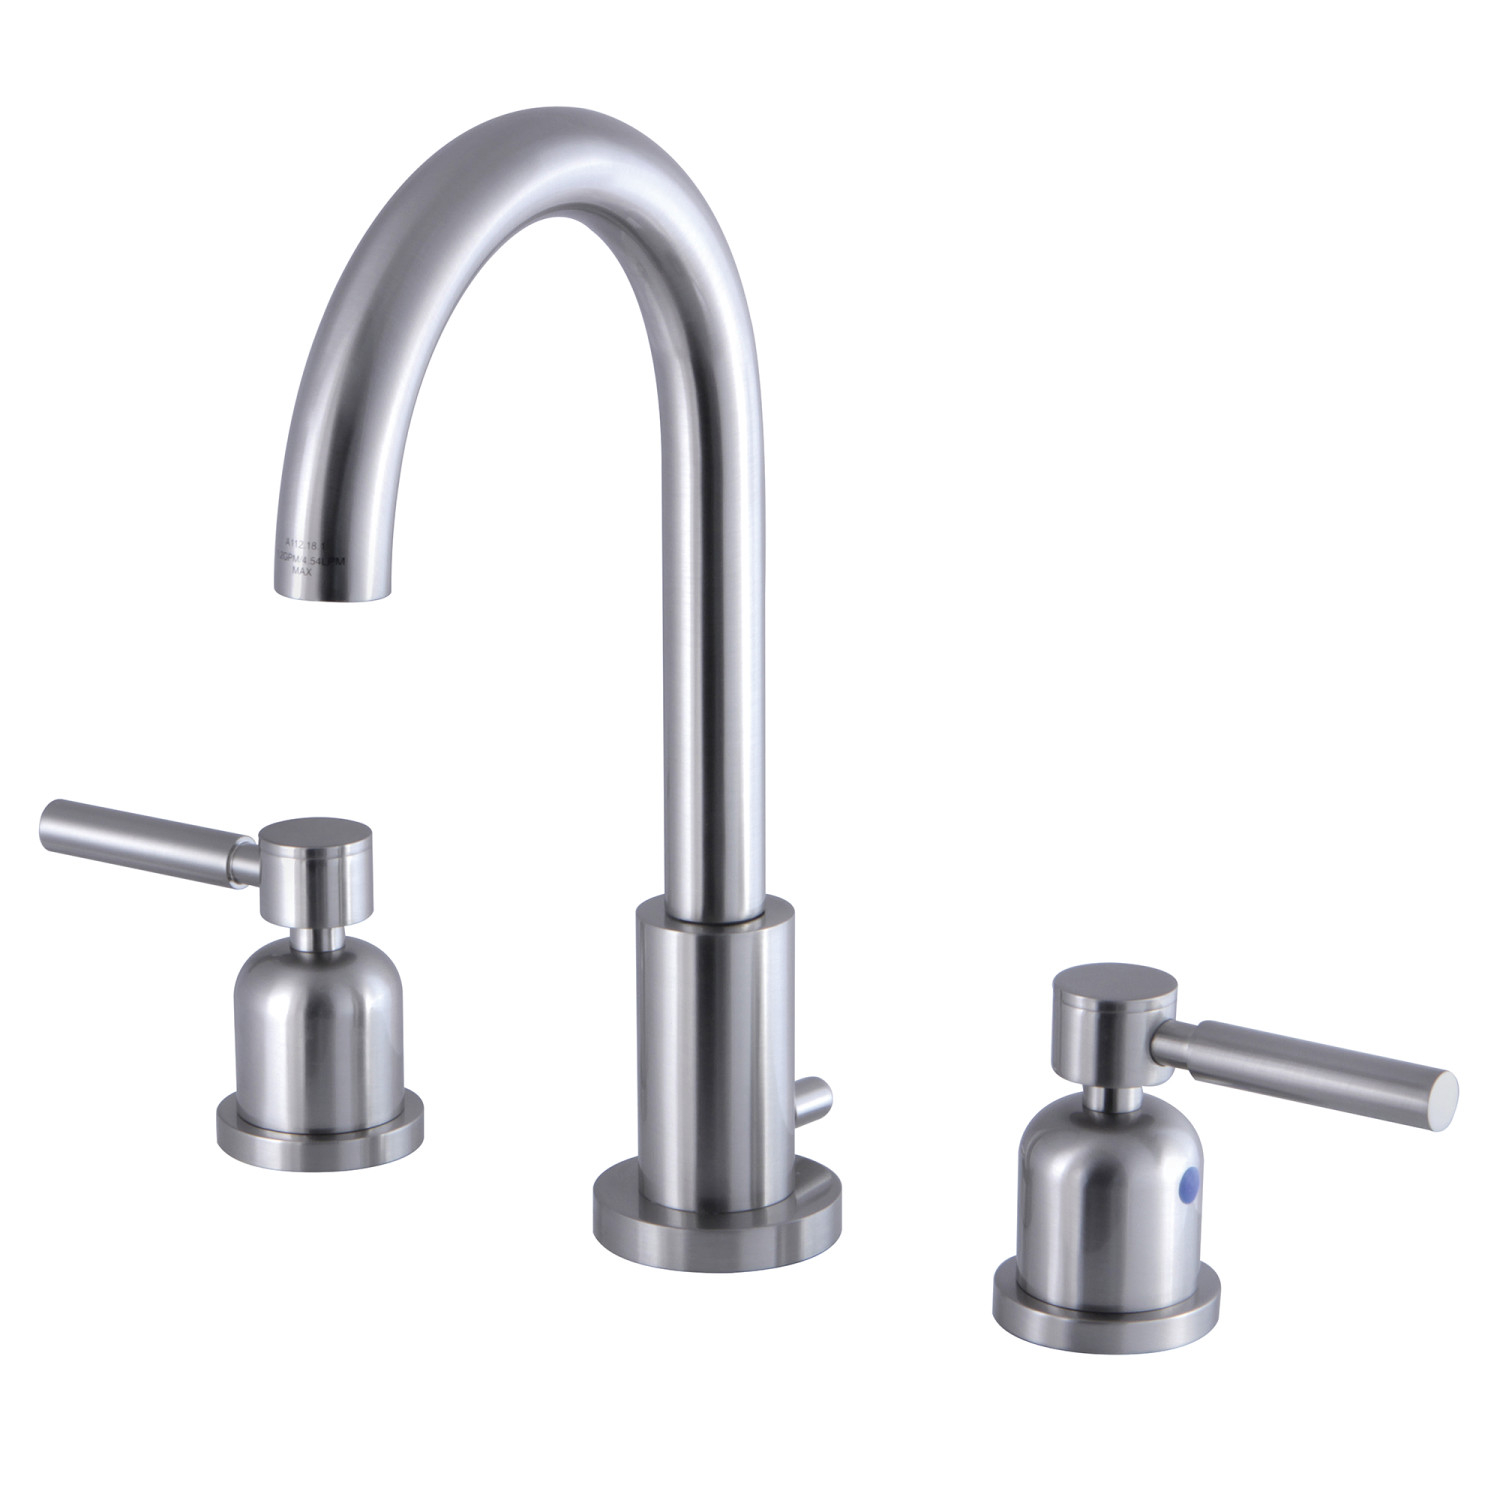 Bathroom Faucets Bathroom Sink Faucets Kingston Brass intended for proportions 1500 X 1500